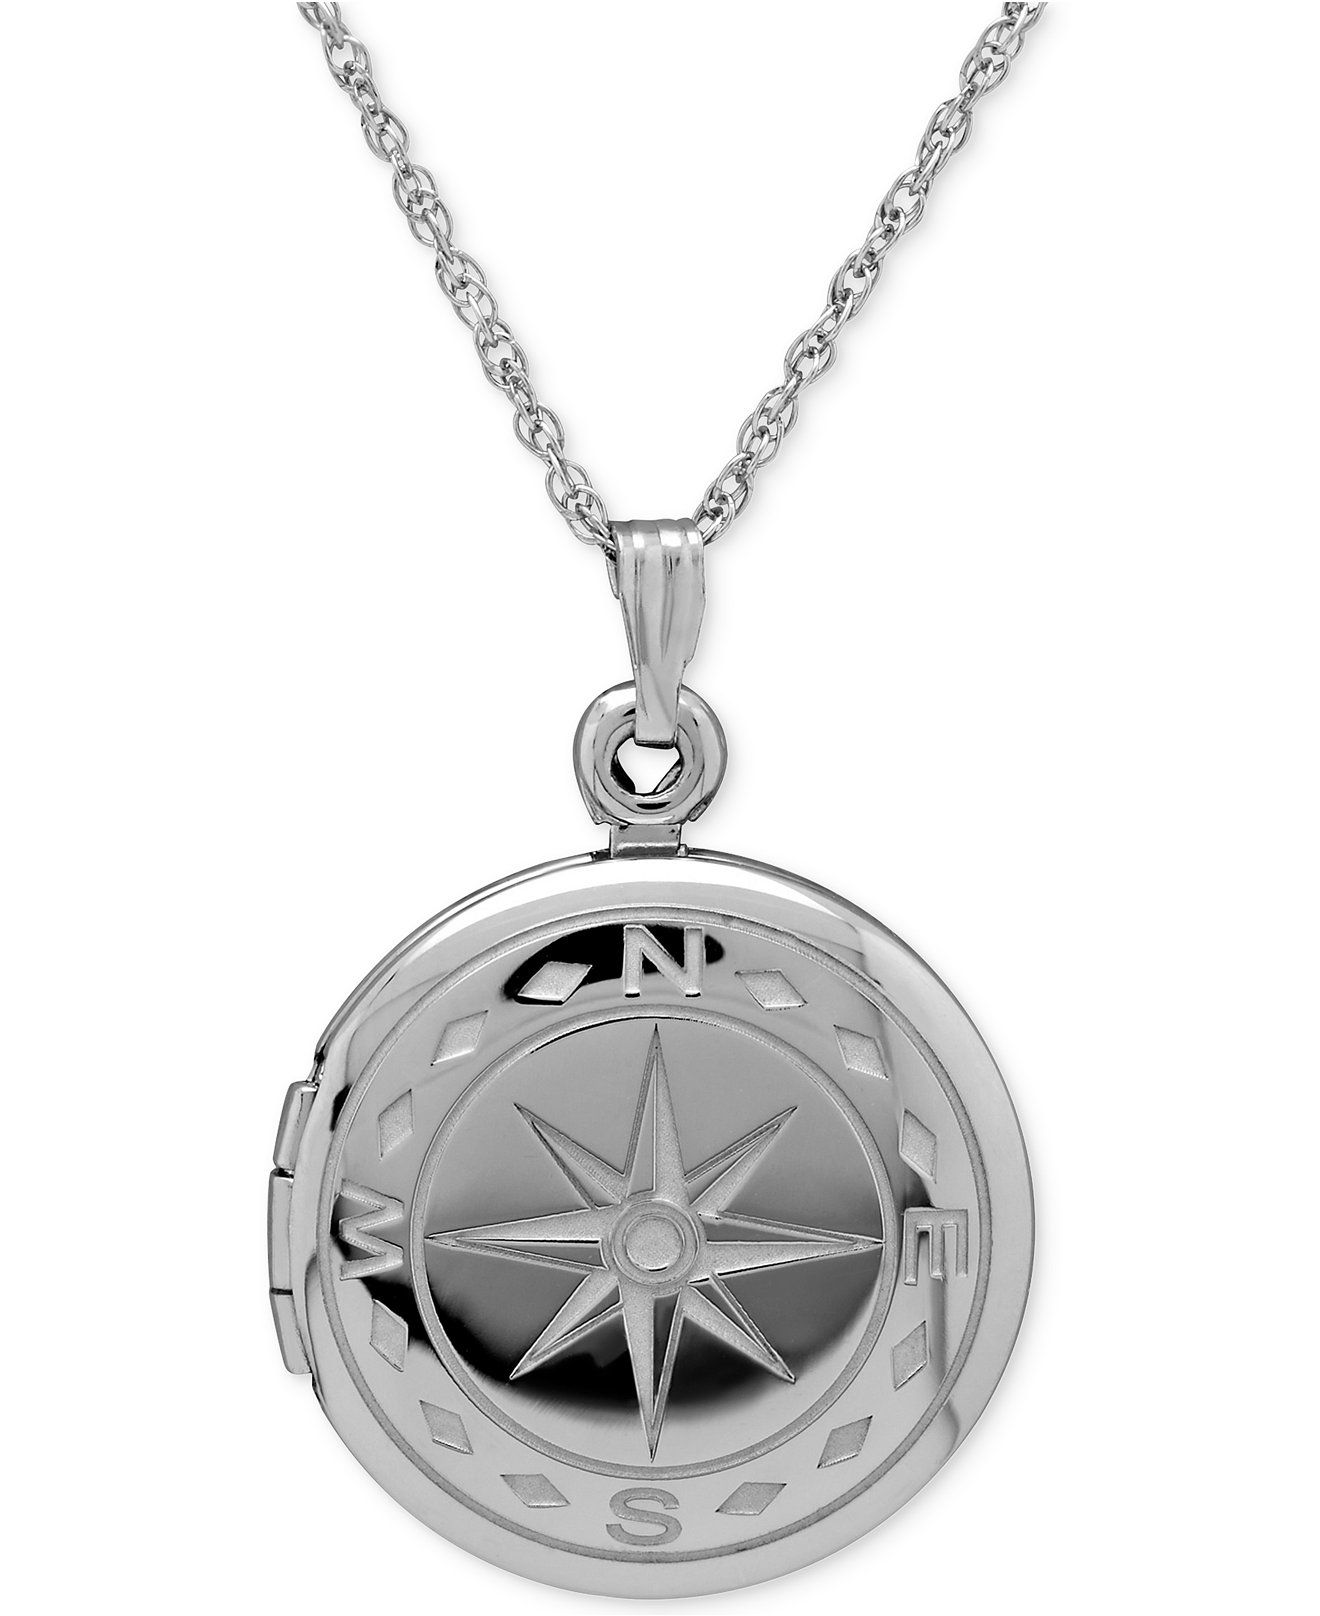 Compass Locket Necklace in Sterling Silver - Necklaces - Jewelry & Watches - Macy's